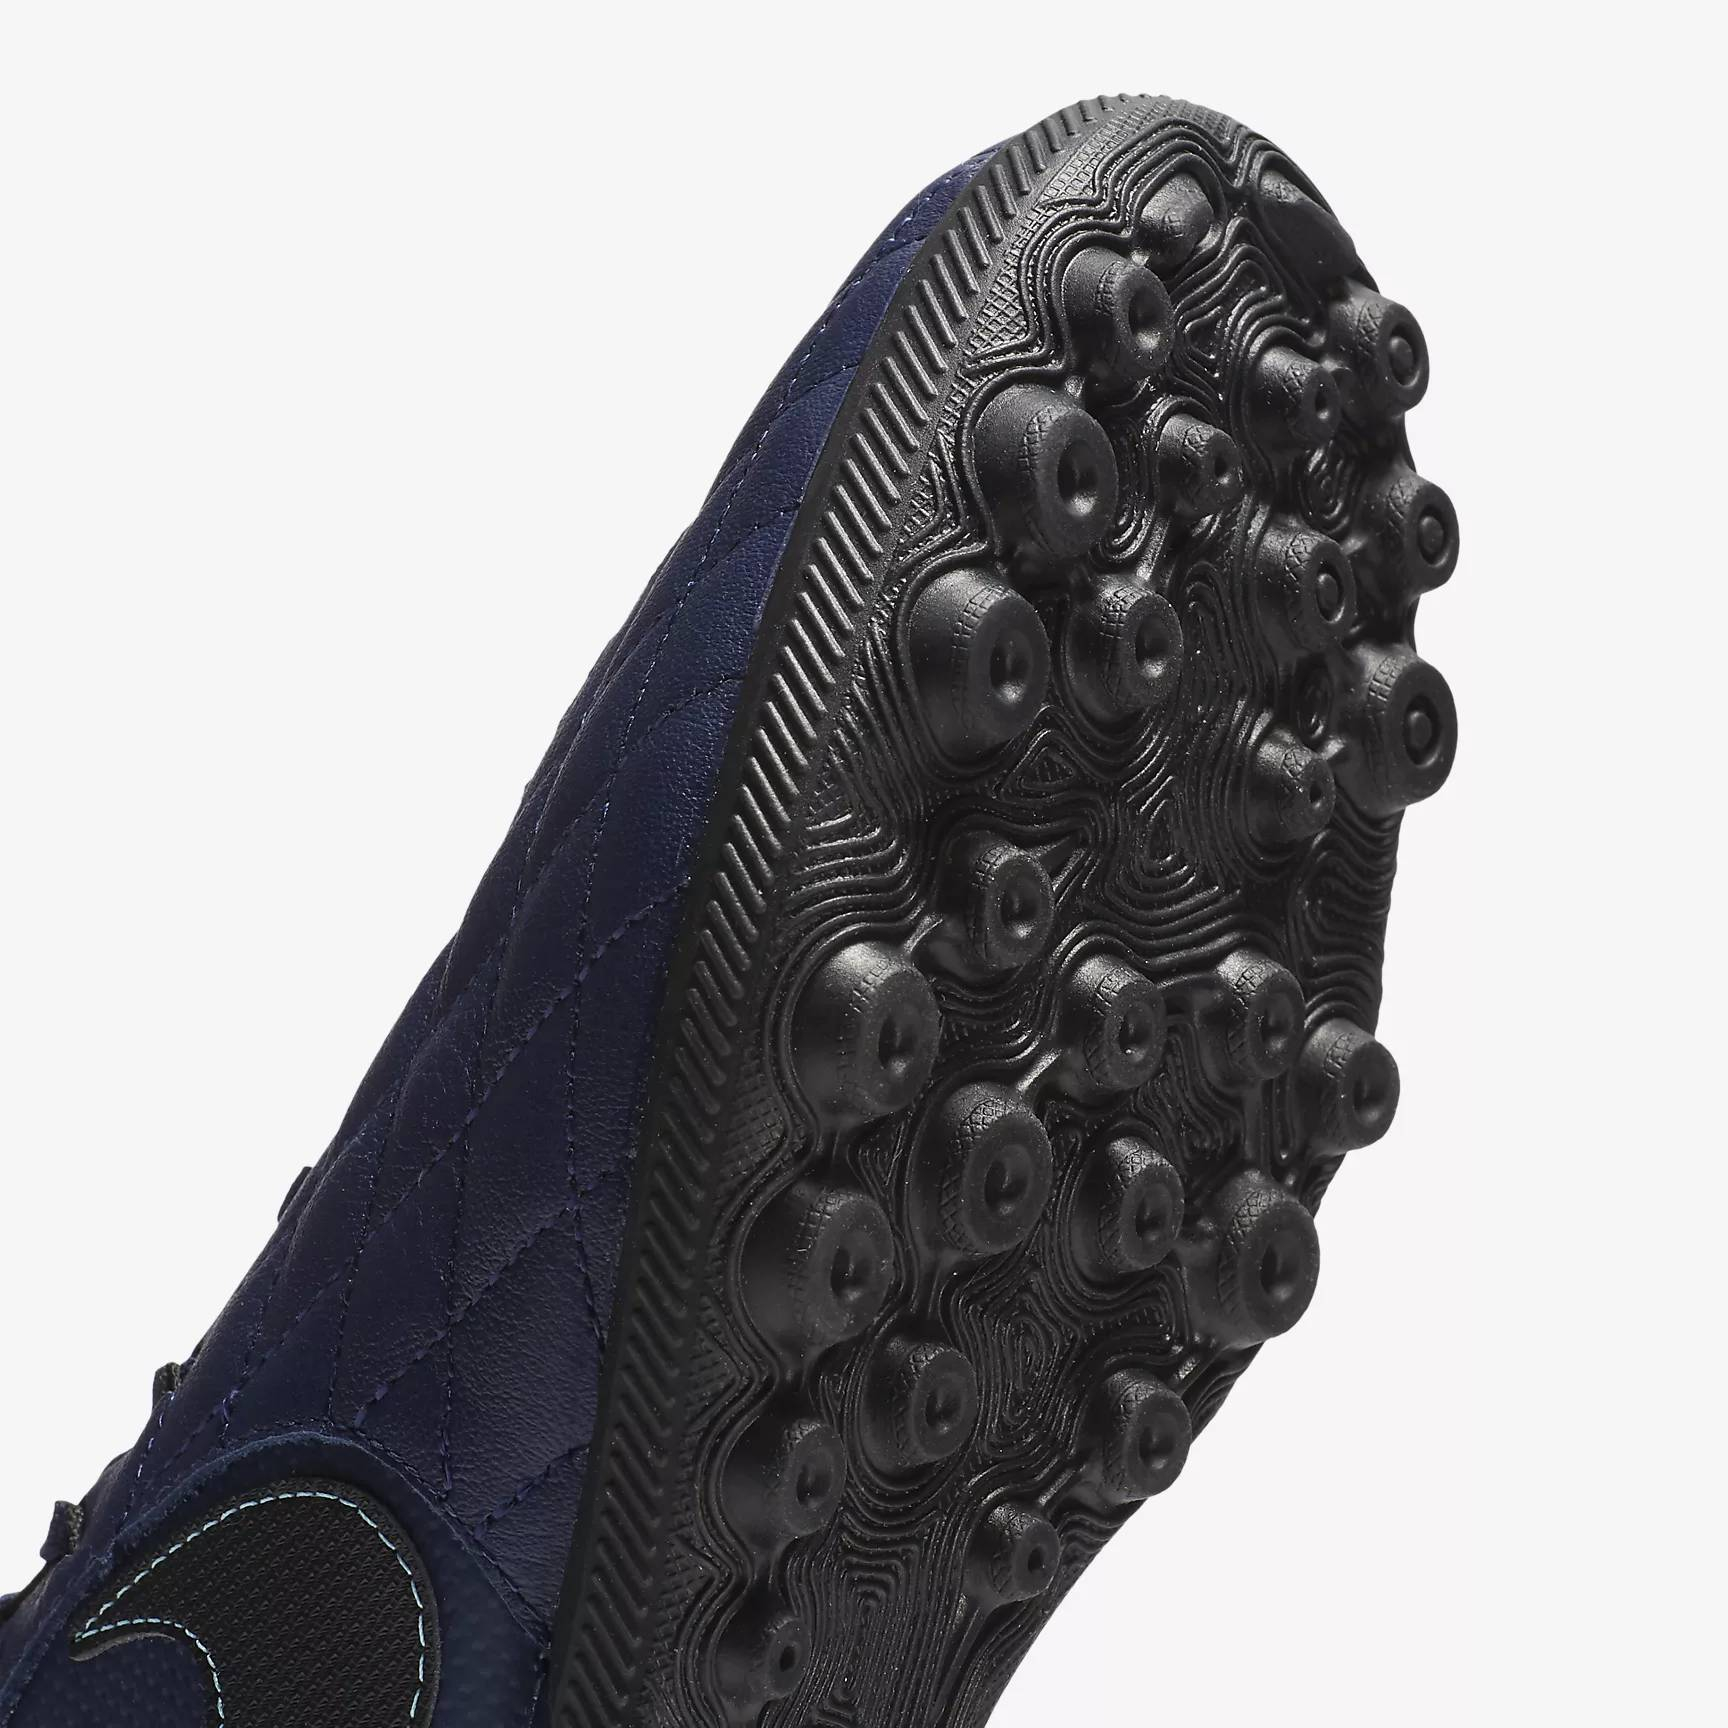 ... nike_tiempox_finale_ronaldinho10_tf_midnight_navy_black_f.jpg; Click to  enlarge image nike_tiempox_finale_ronaldinho10_tf_midnight_navy_black_g.jpg